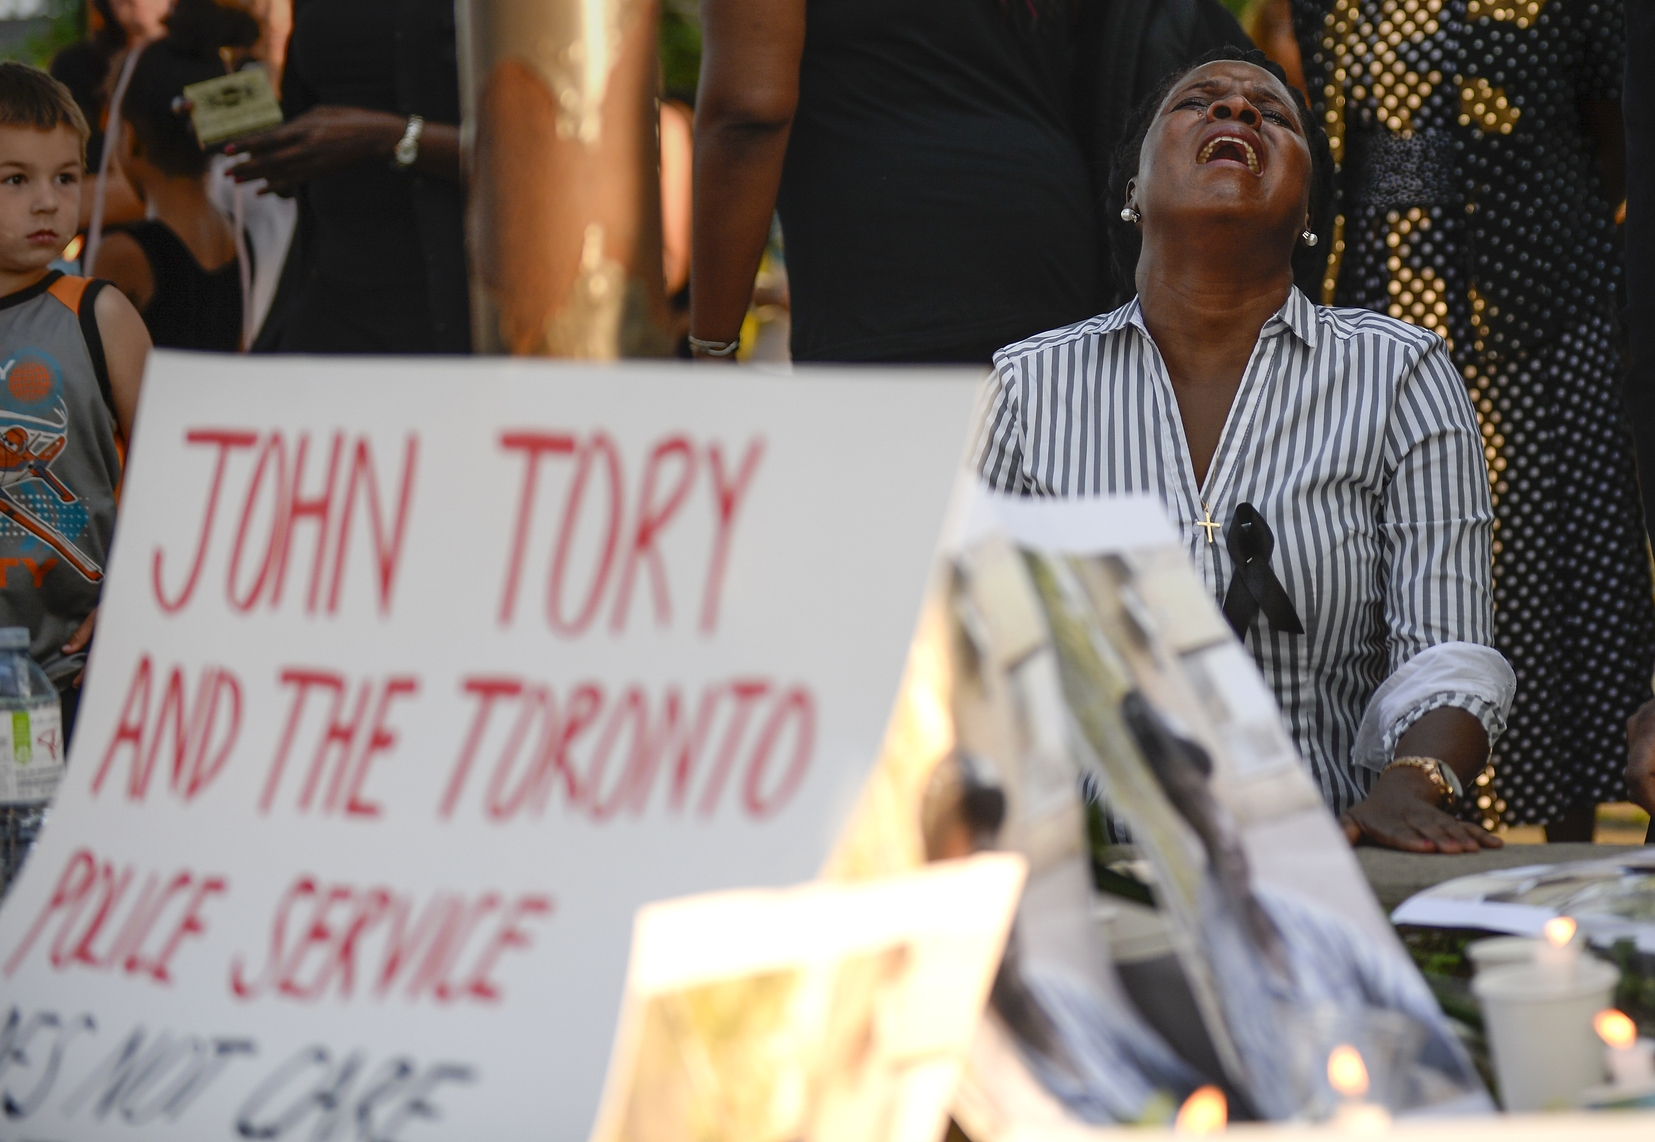 A woman cries during a vigil at  Eglinton Gilbert Parkette held for Andrew Loku on Friday July 10, 2015. Loku was shot and killed by police on July 5, 2015.